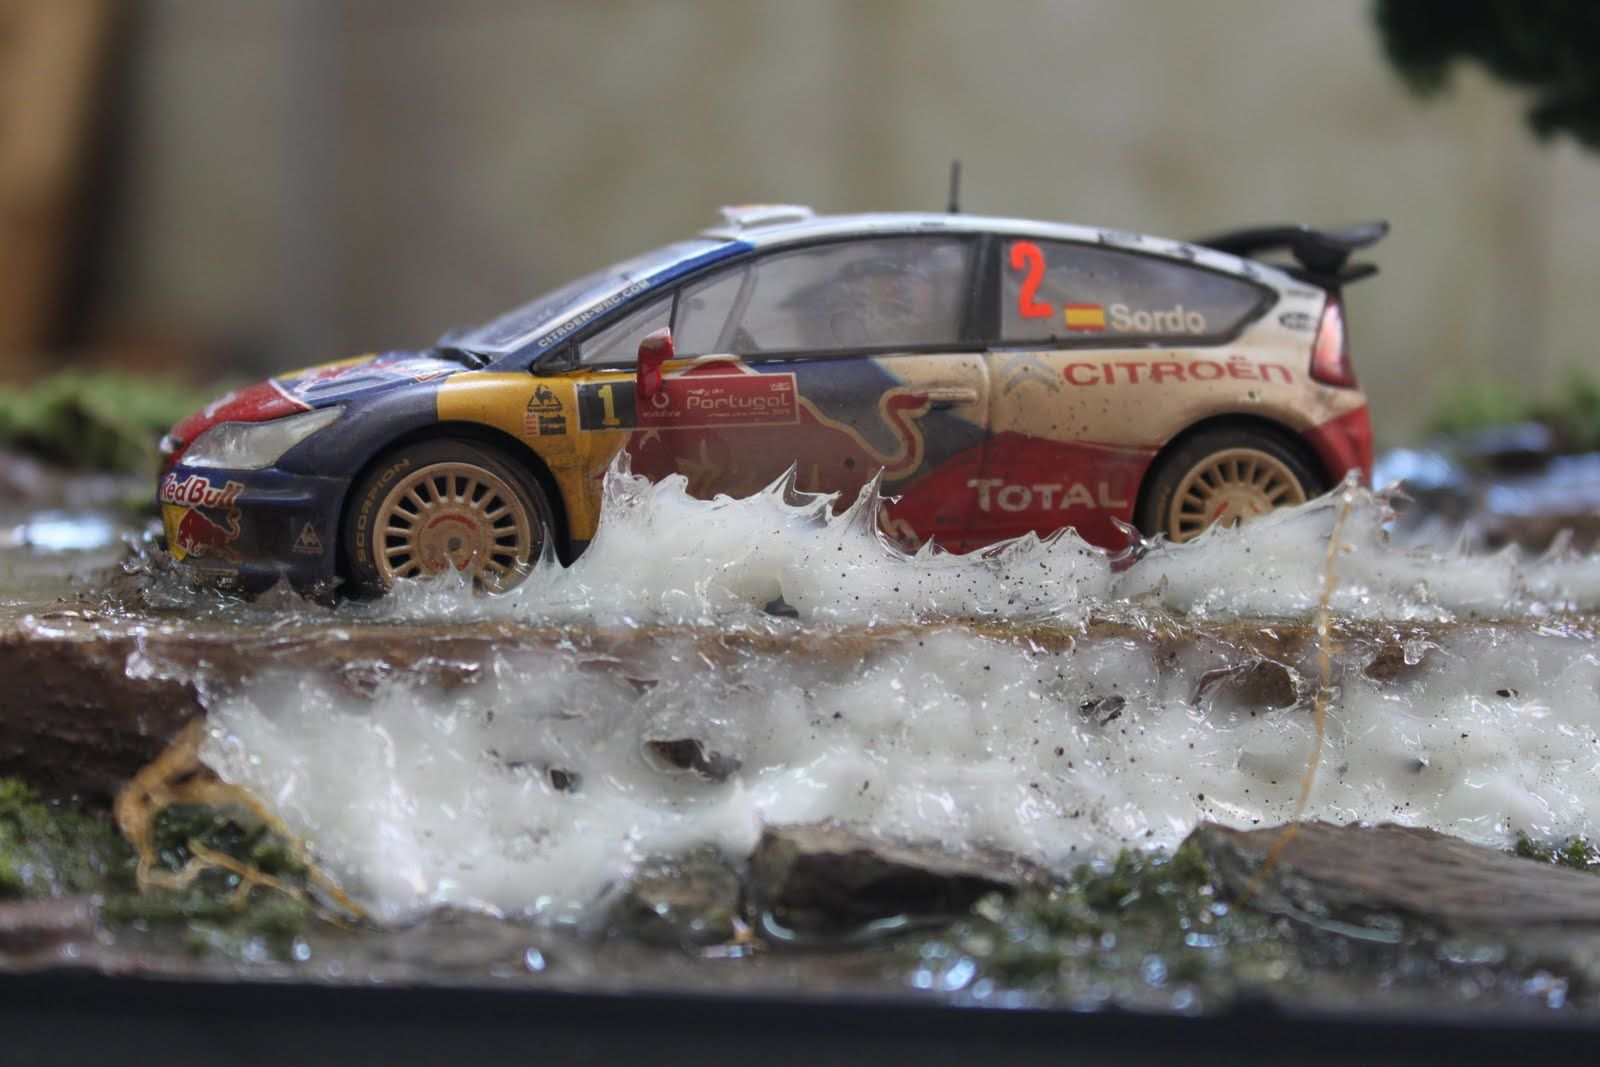 Rally slot diorama 1/32 | Cotxes | Pinterest | Dioramas, Rally and Slot